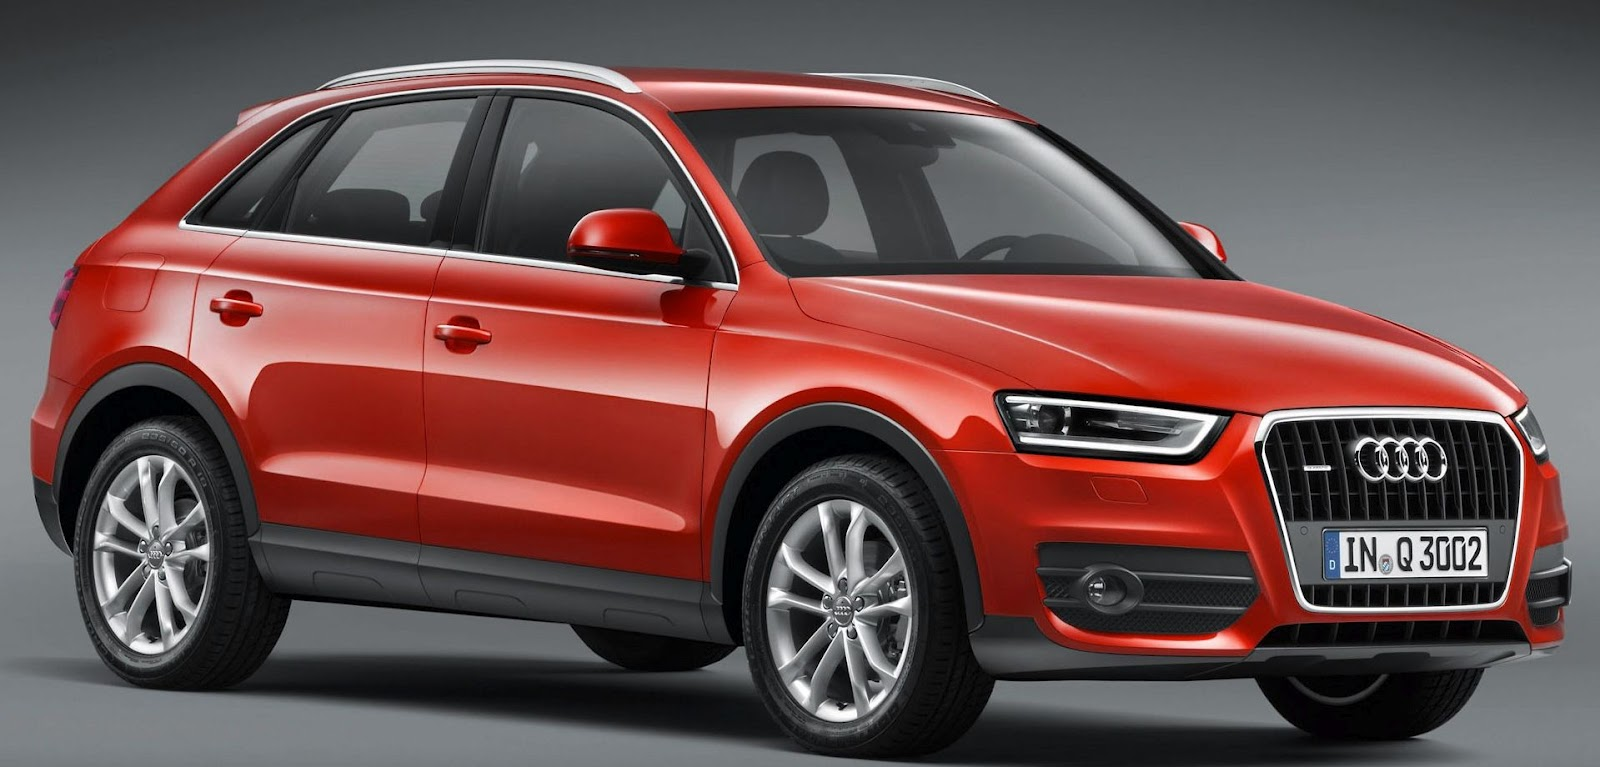 Audi Q3: photos, specifications, car features and reviews of owners 78